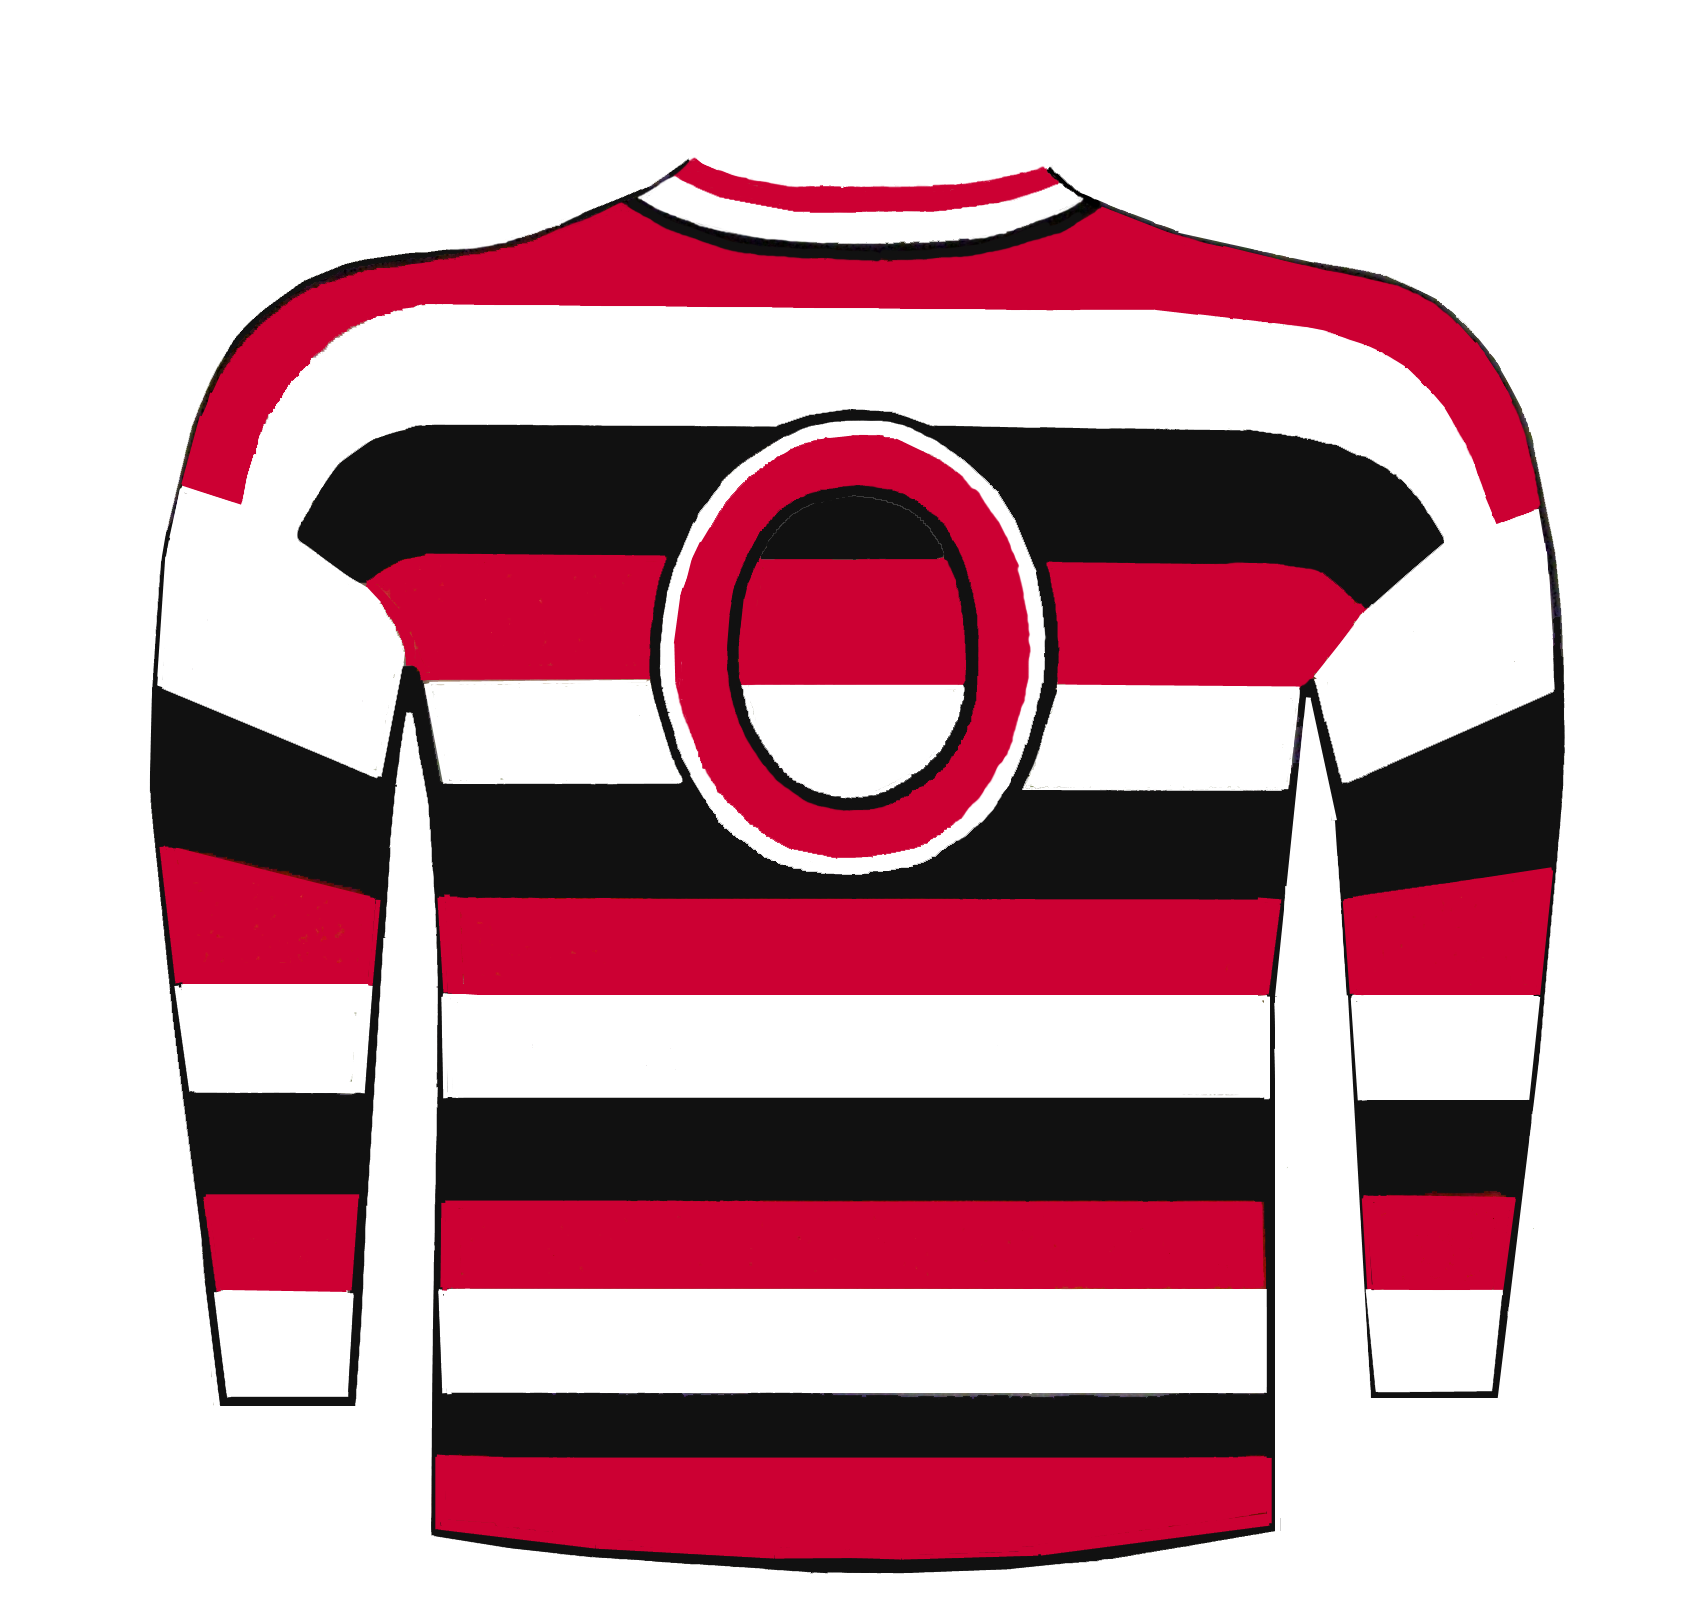 the best attitude a9c1f f8e83 File:1933 Ottawa Senators jersey.png - Wikimedia Commons